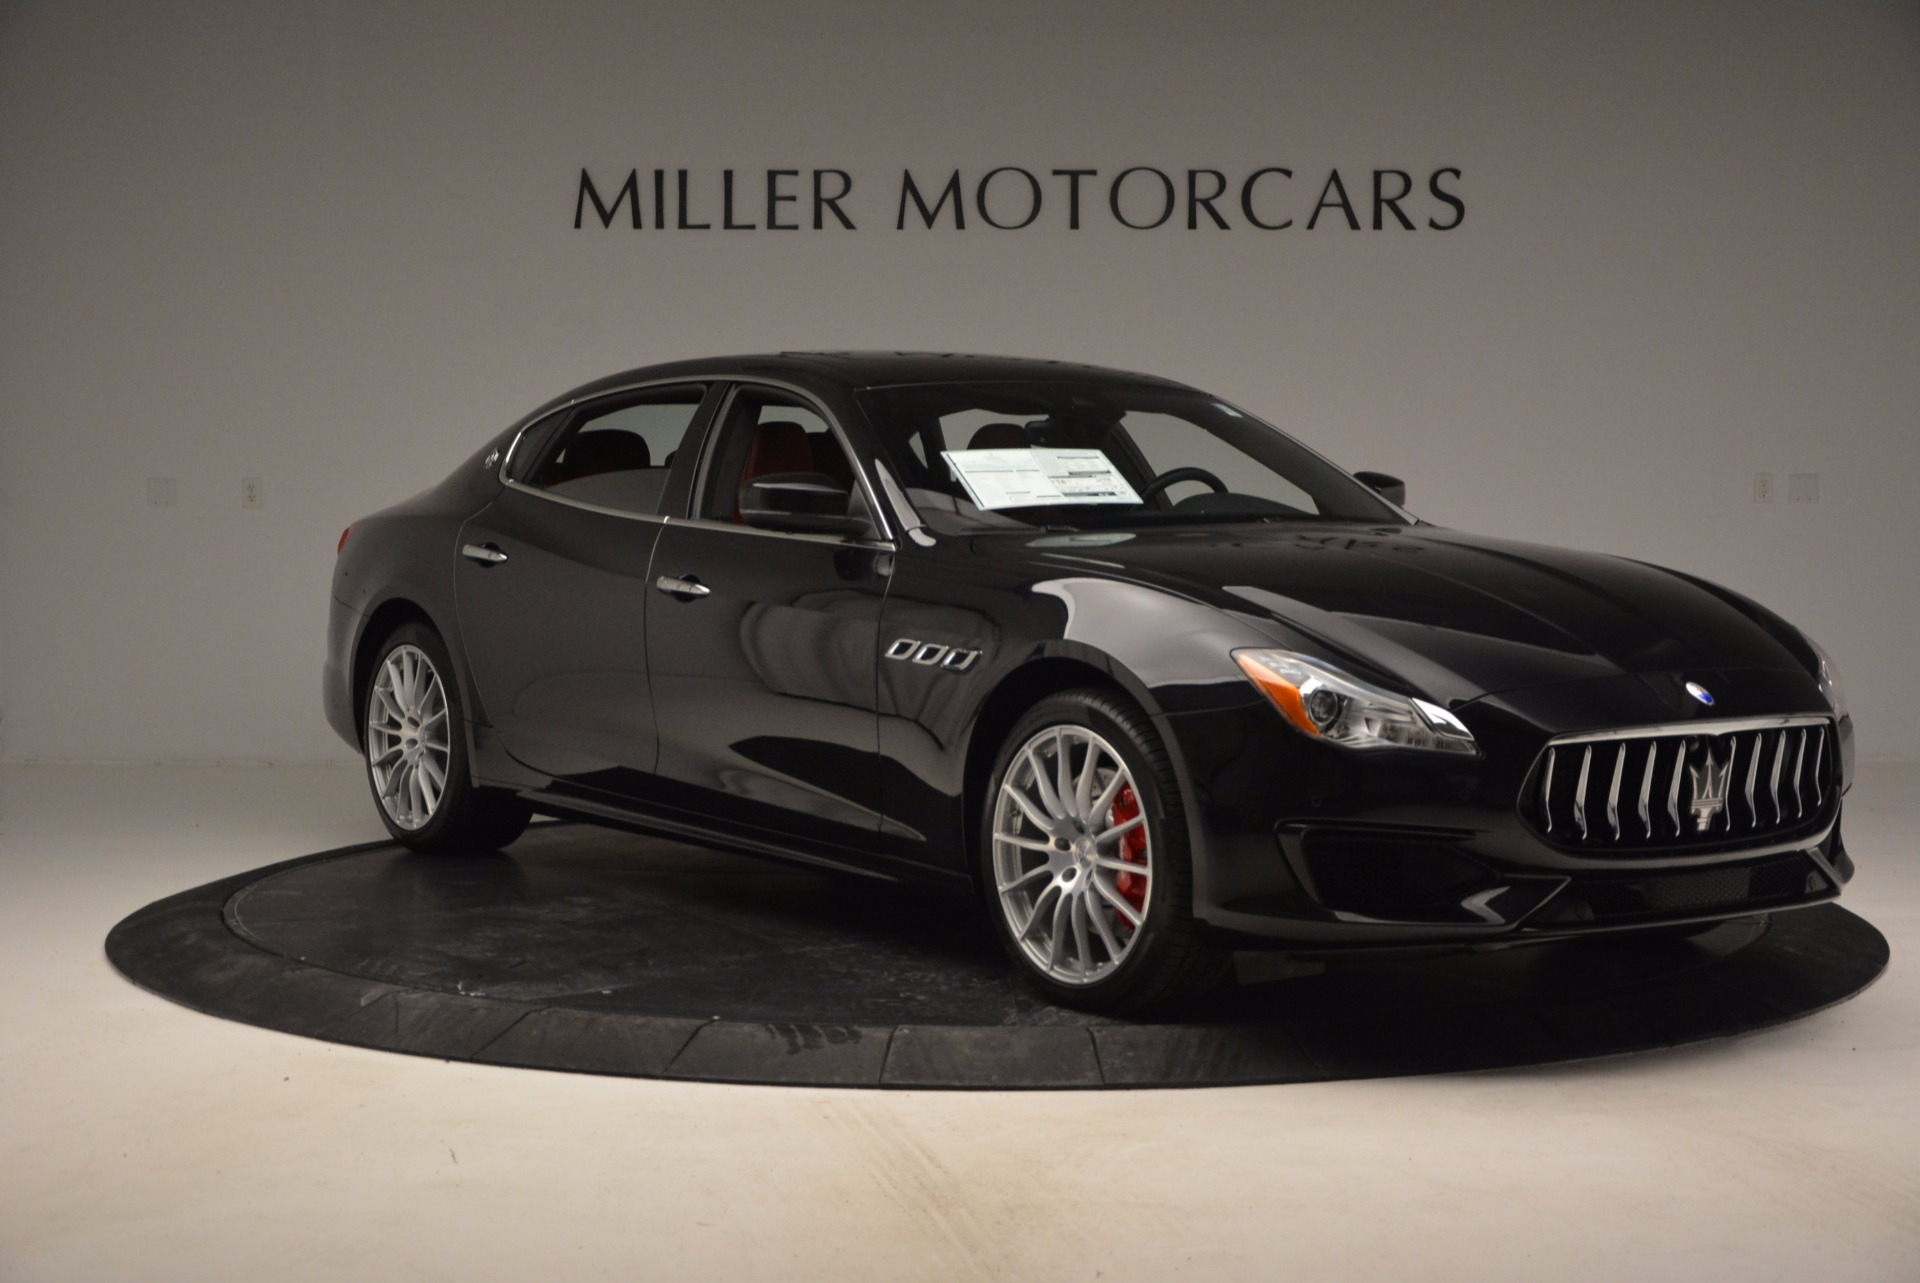 New 2017 Maserati Quattroporte S Q4 GranSport For Sale In Westport, CT 685_p11